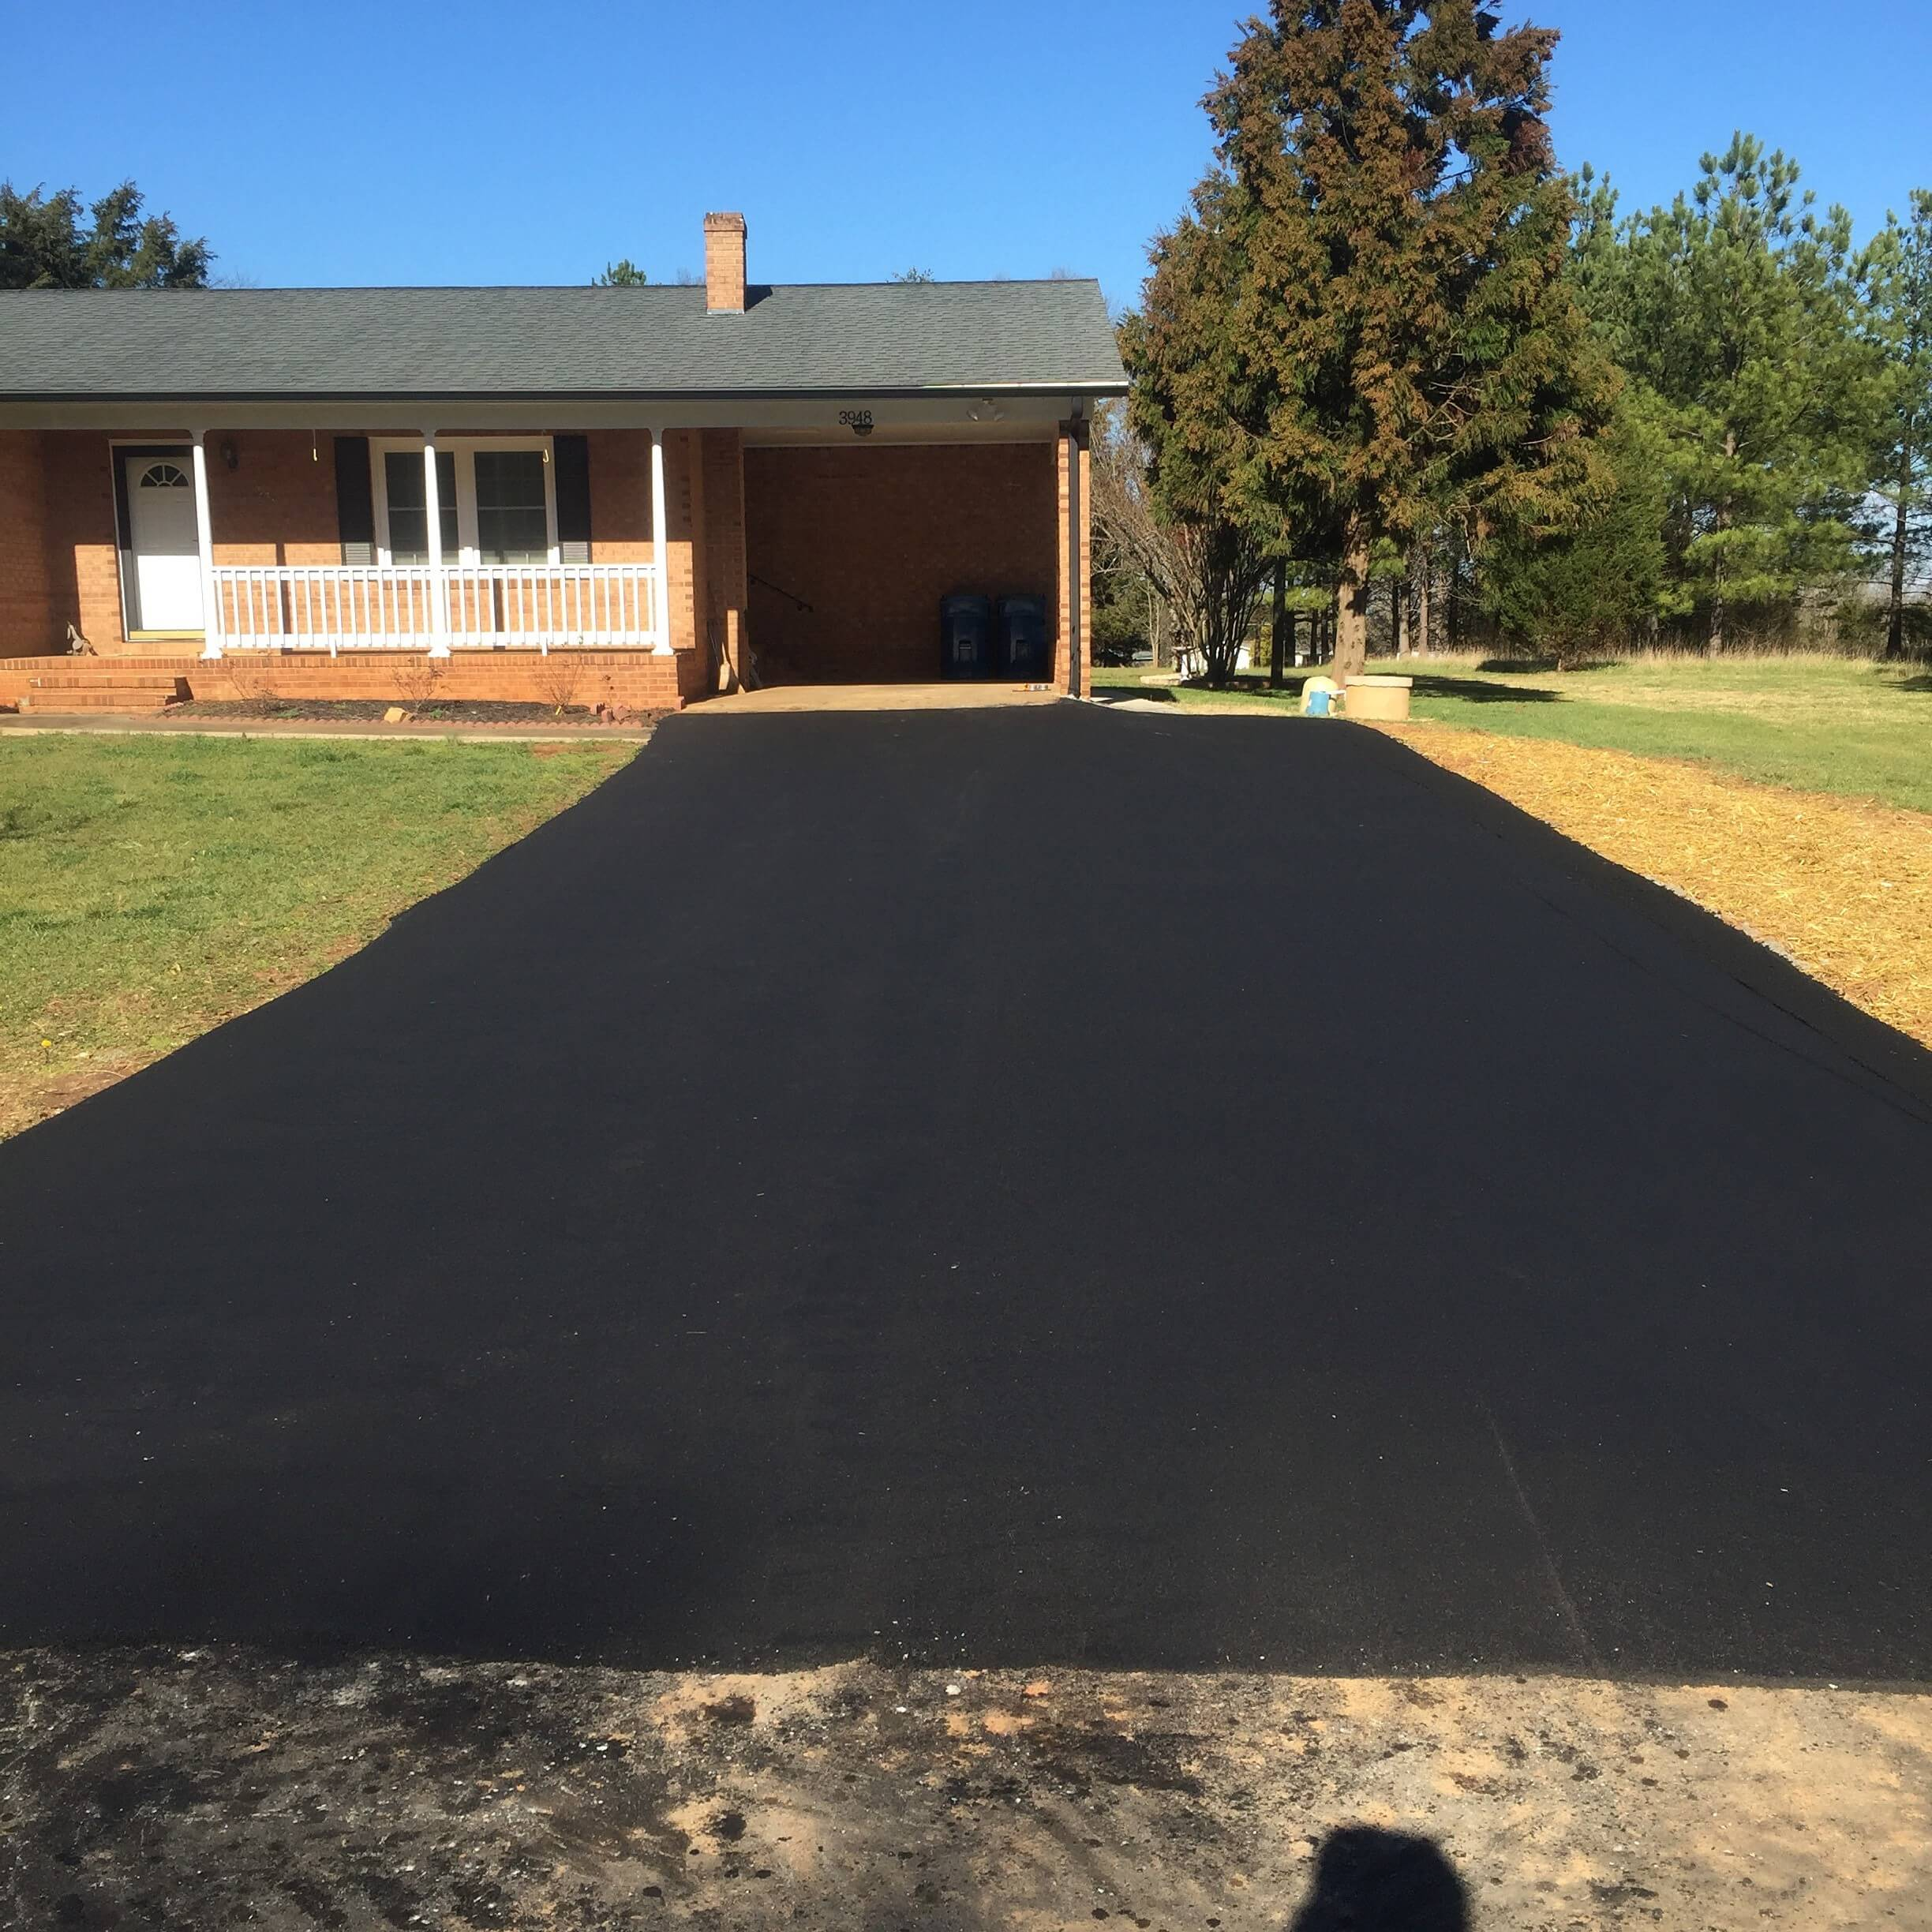 Should I Patch or Repave Driveway?